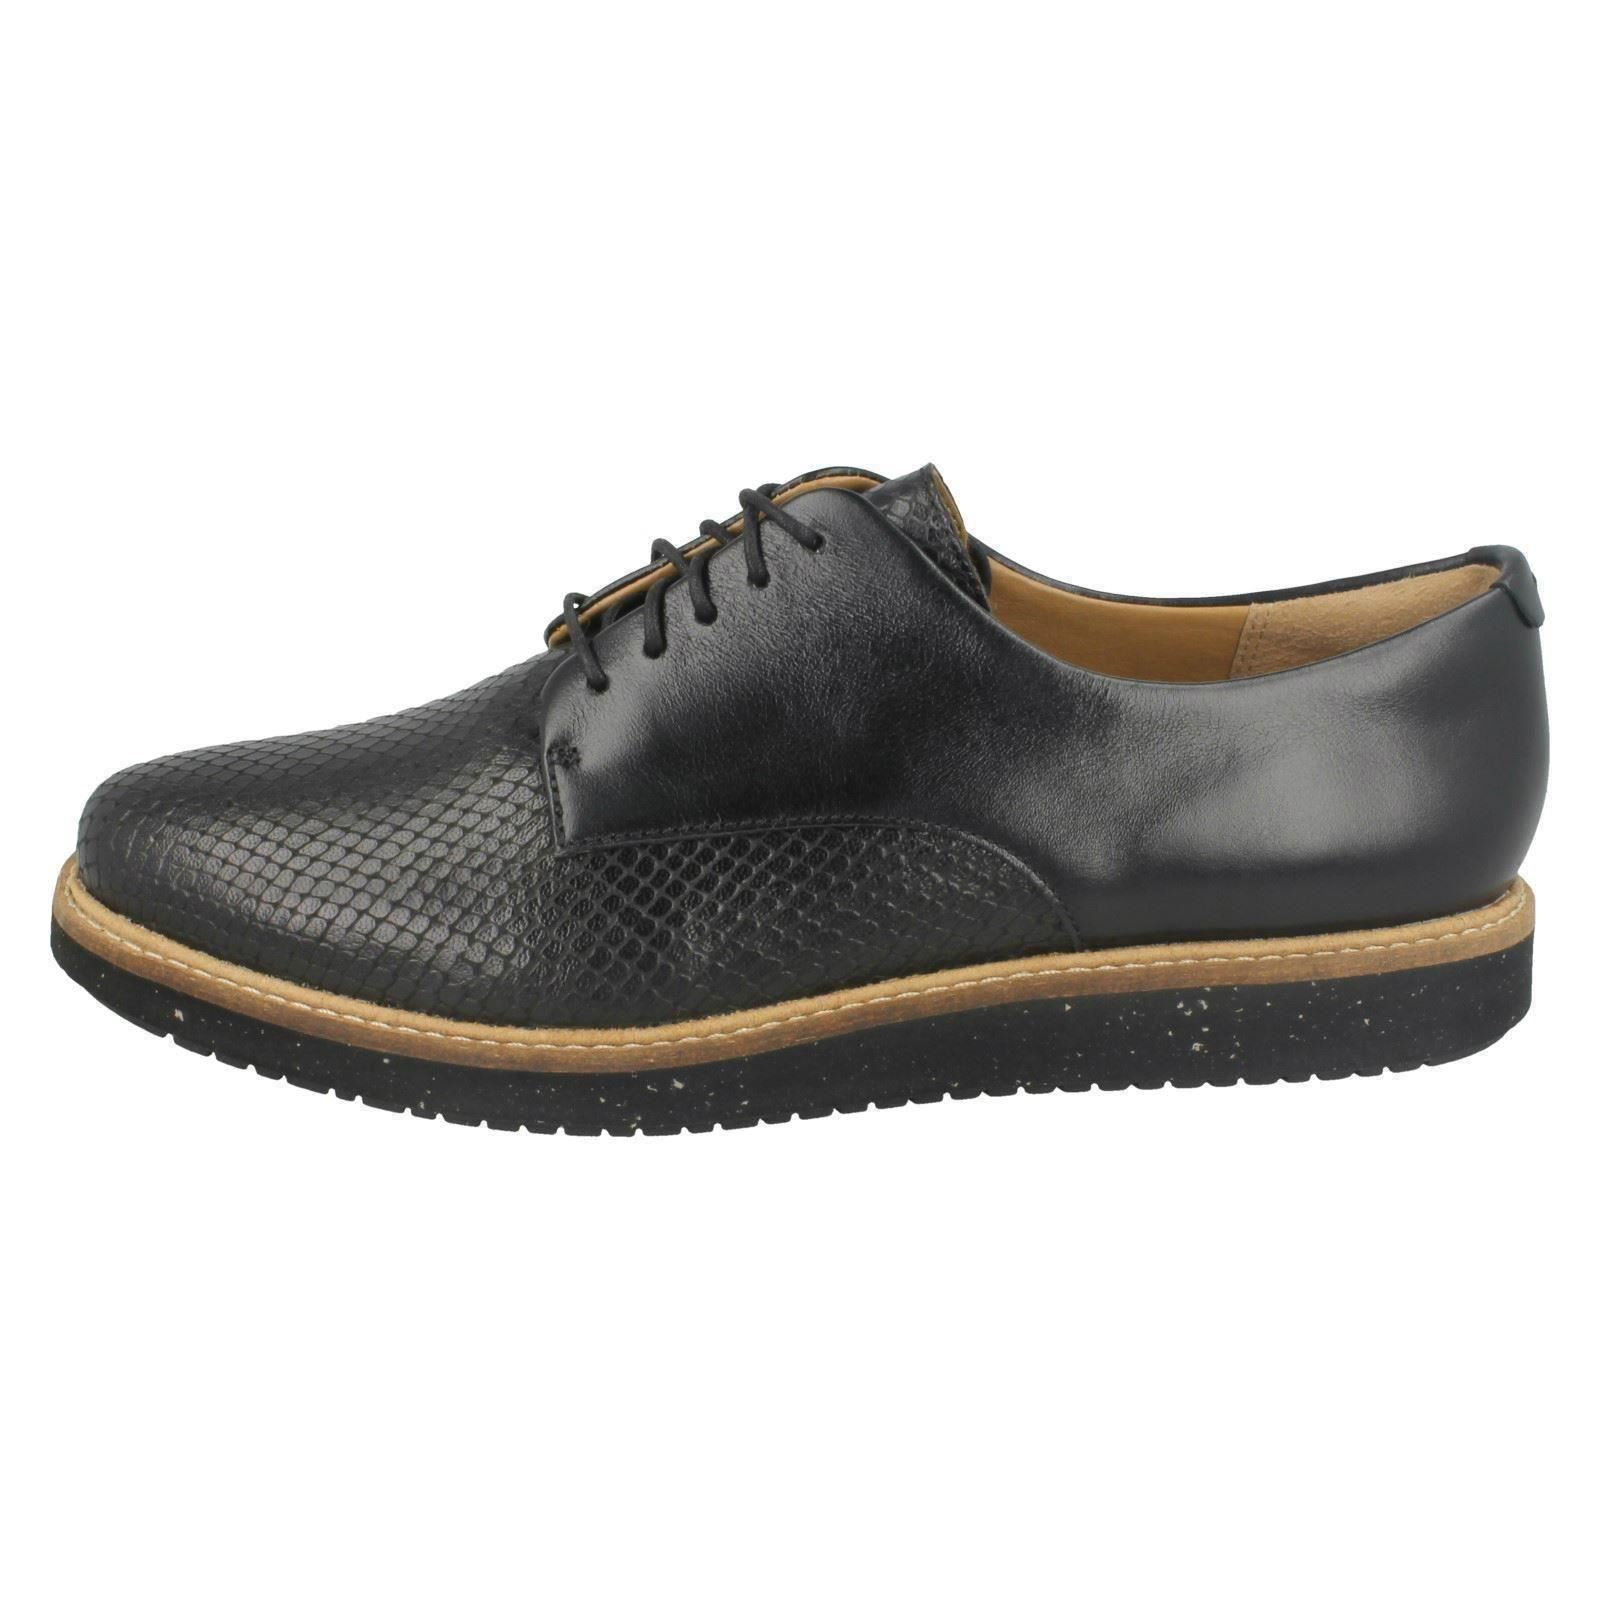 Clarks Ladies Everyday Casual Shoes Glick Darby